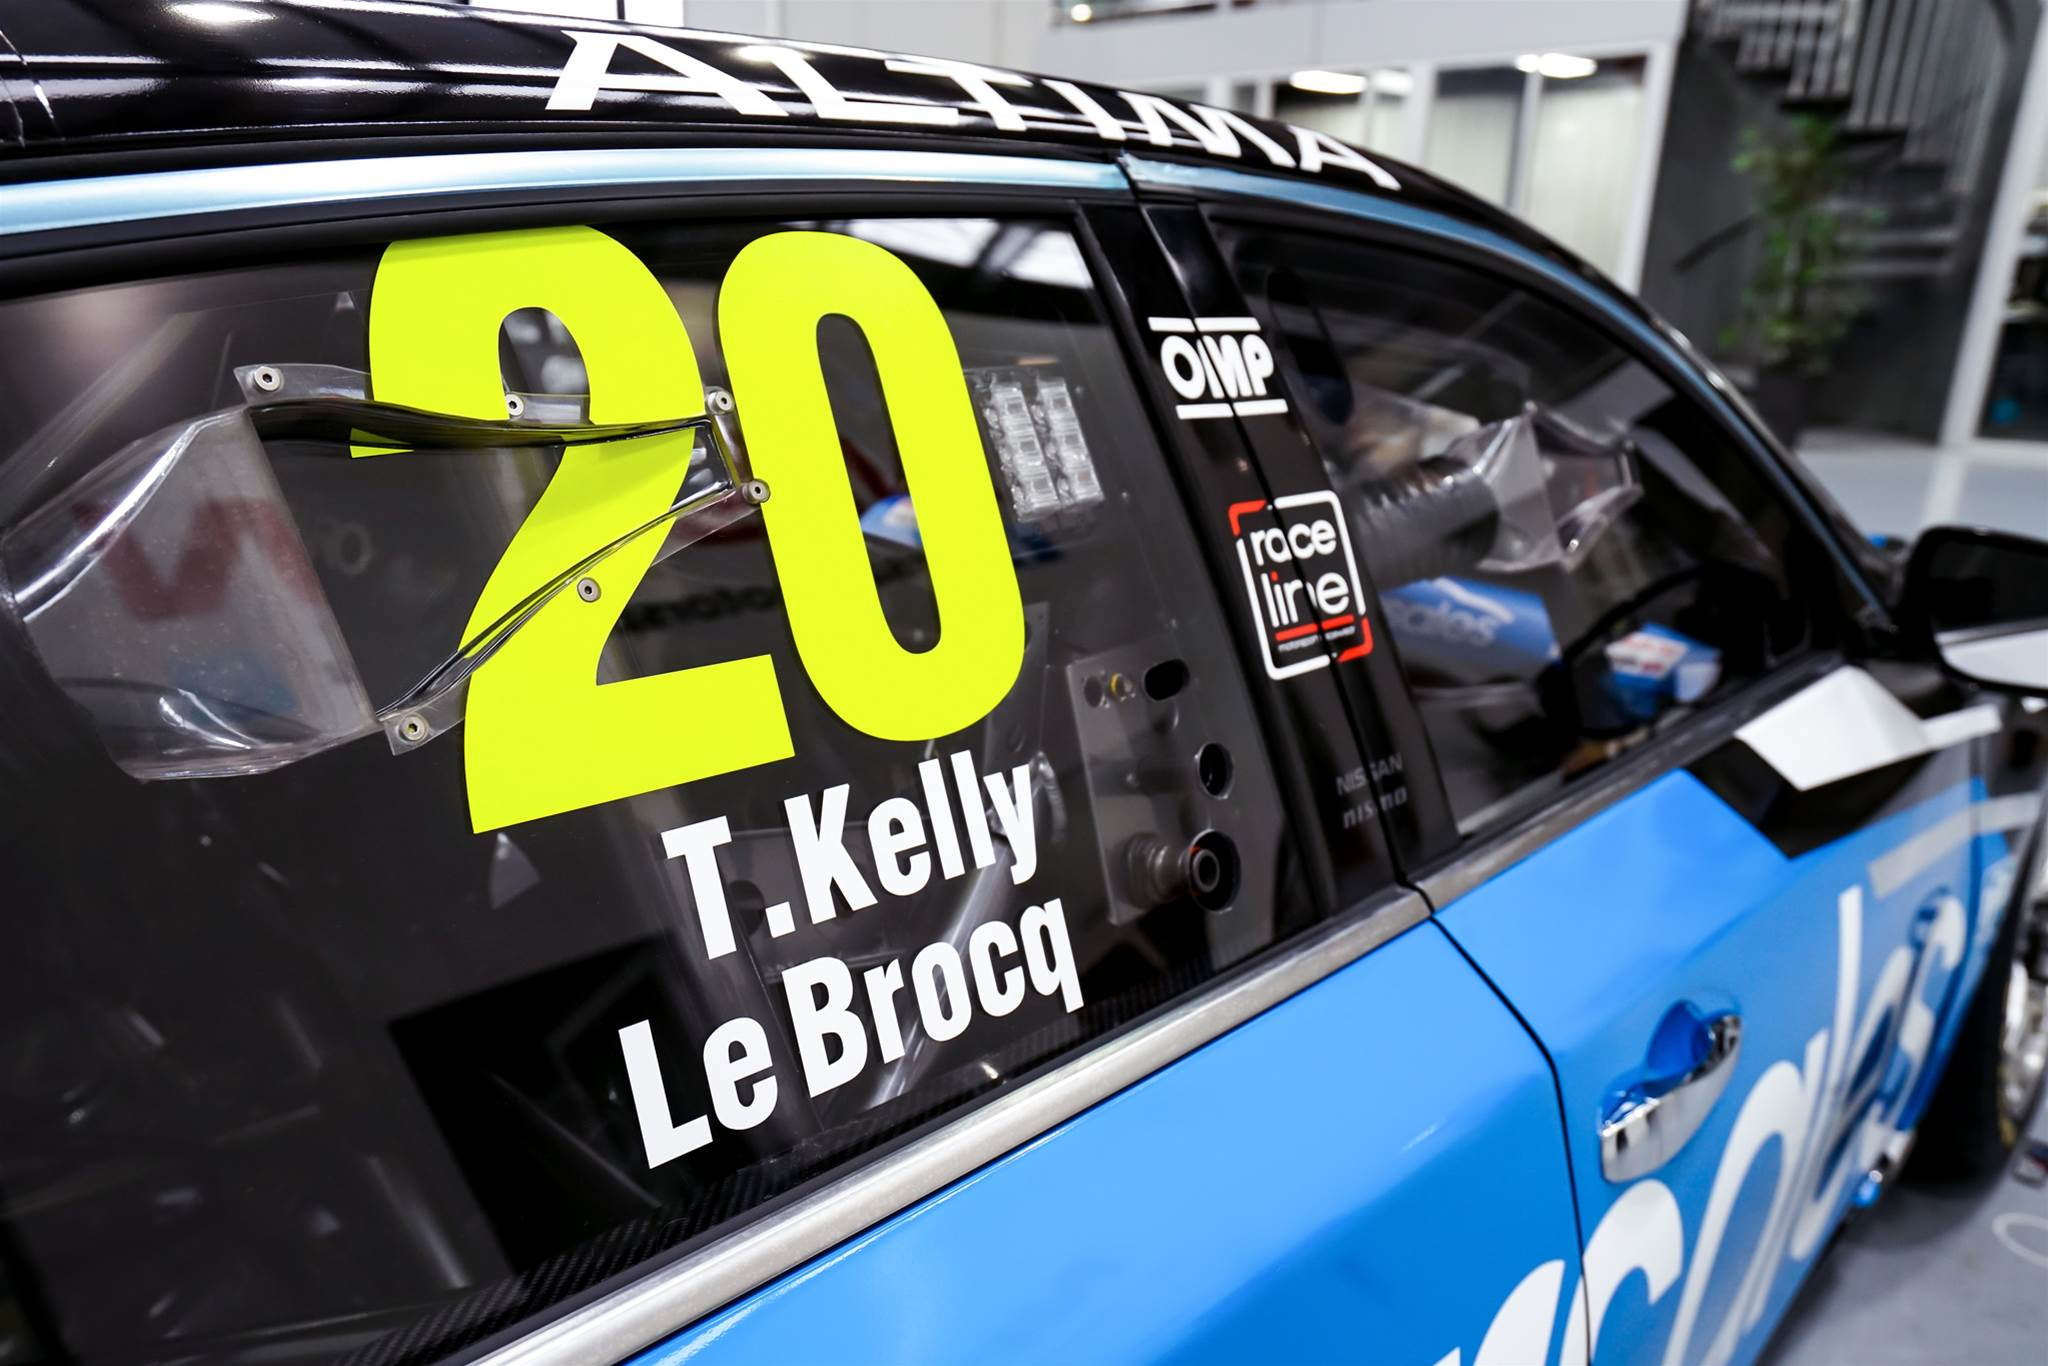 Todd Kelly reflects on 20 years at Bathurst